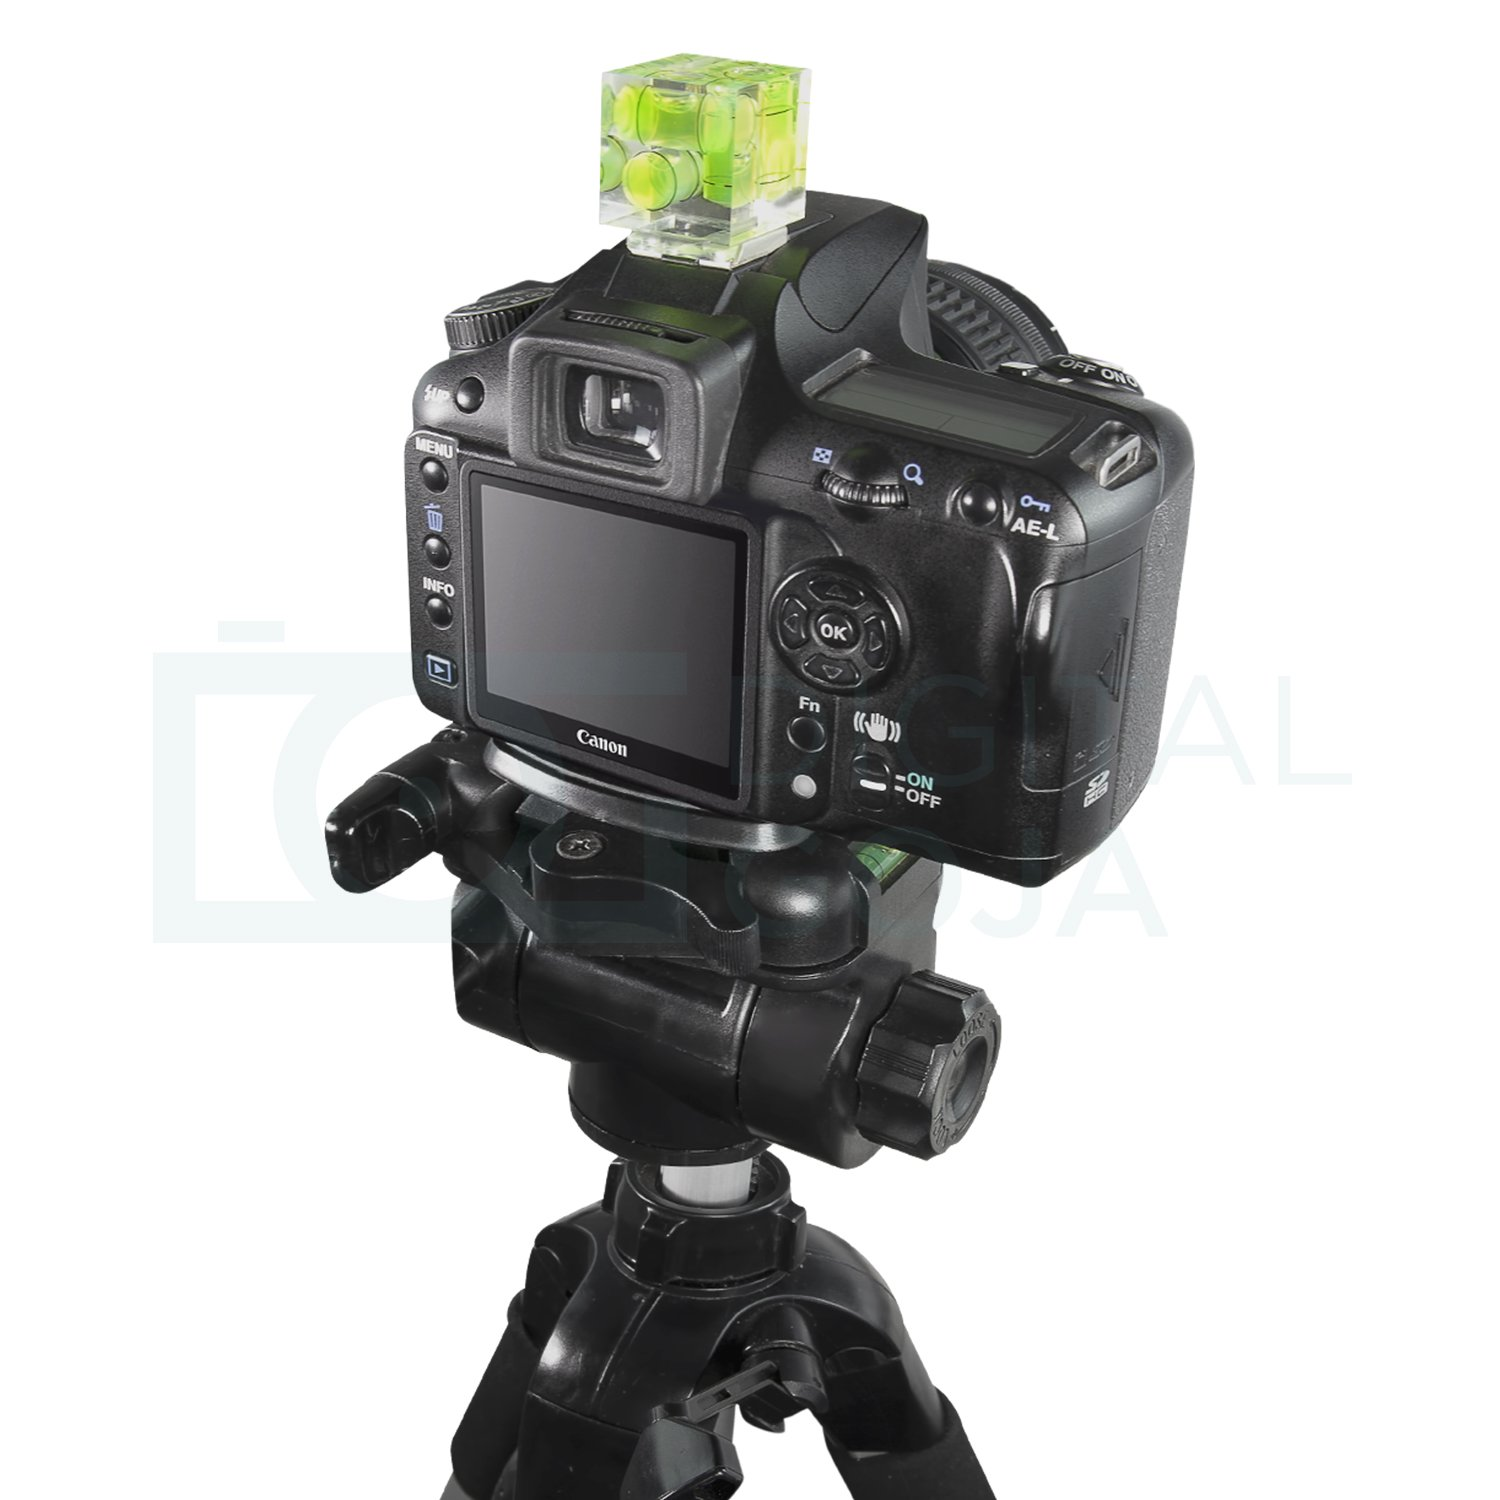 Three Axis Hot Shoe Bubble Level For All Dslr Cameras Spirit Nikon Canon Pentax Olympus Panasonic With A Standard Mount Sony Camera Photo